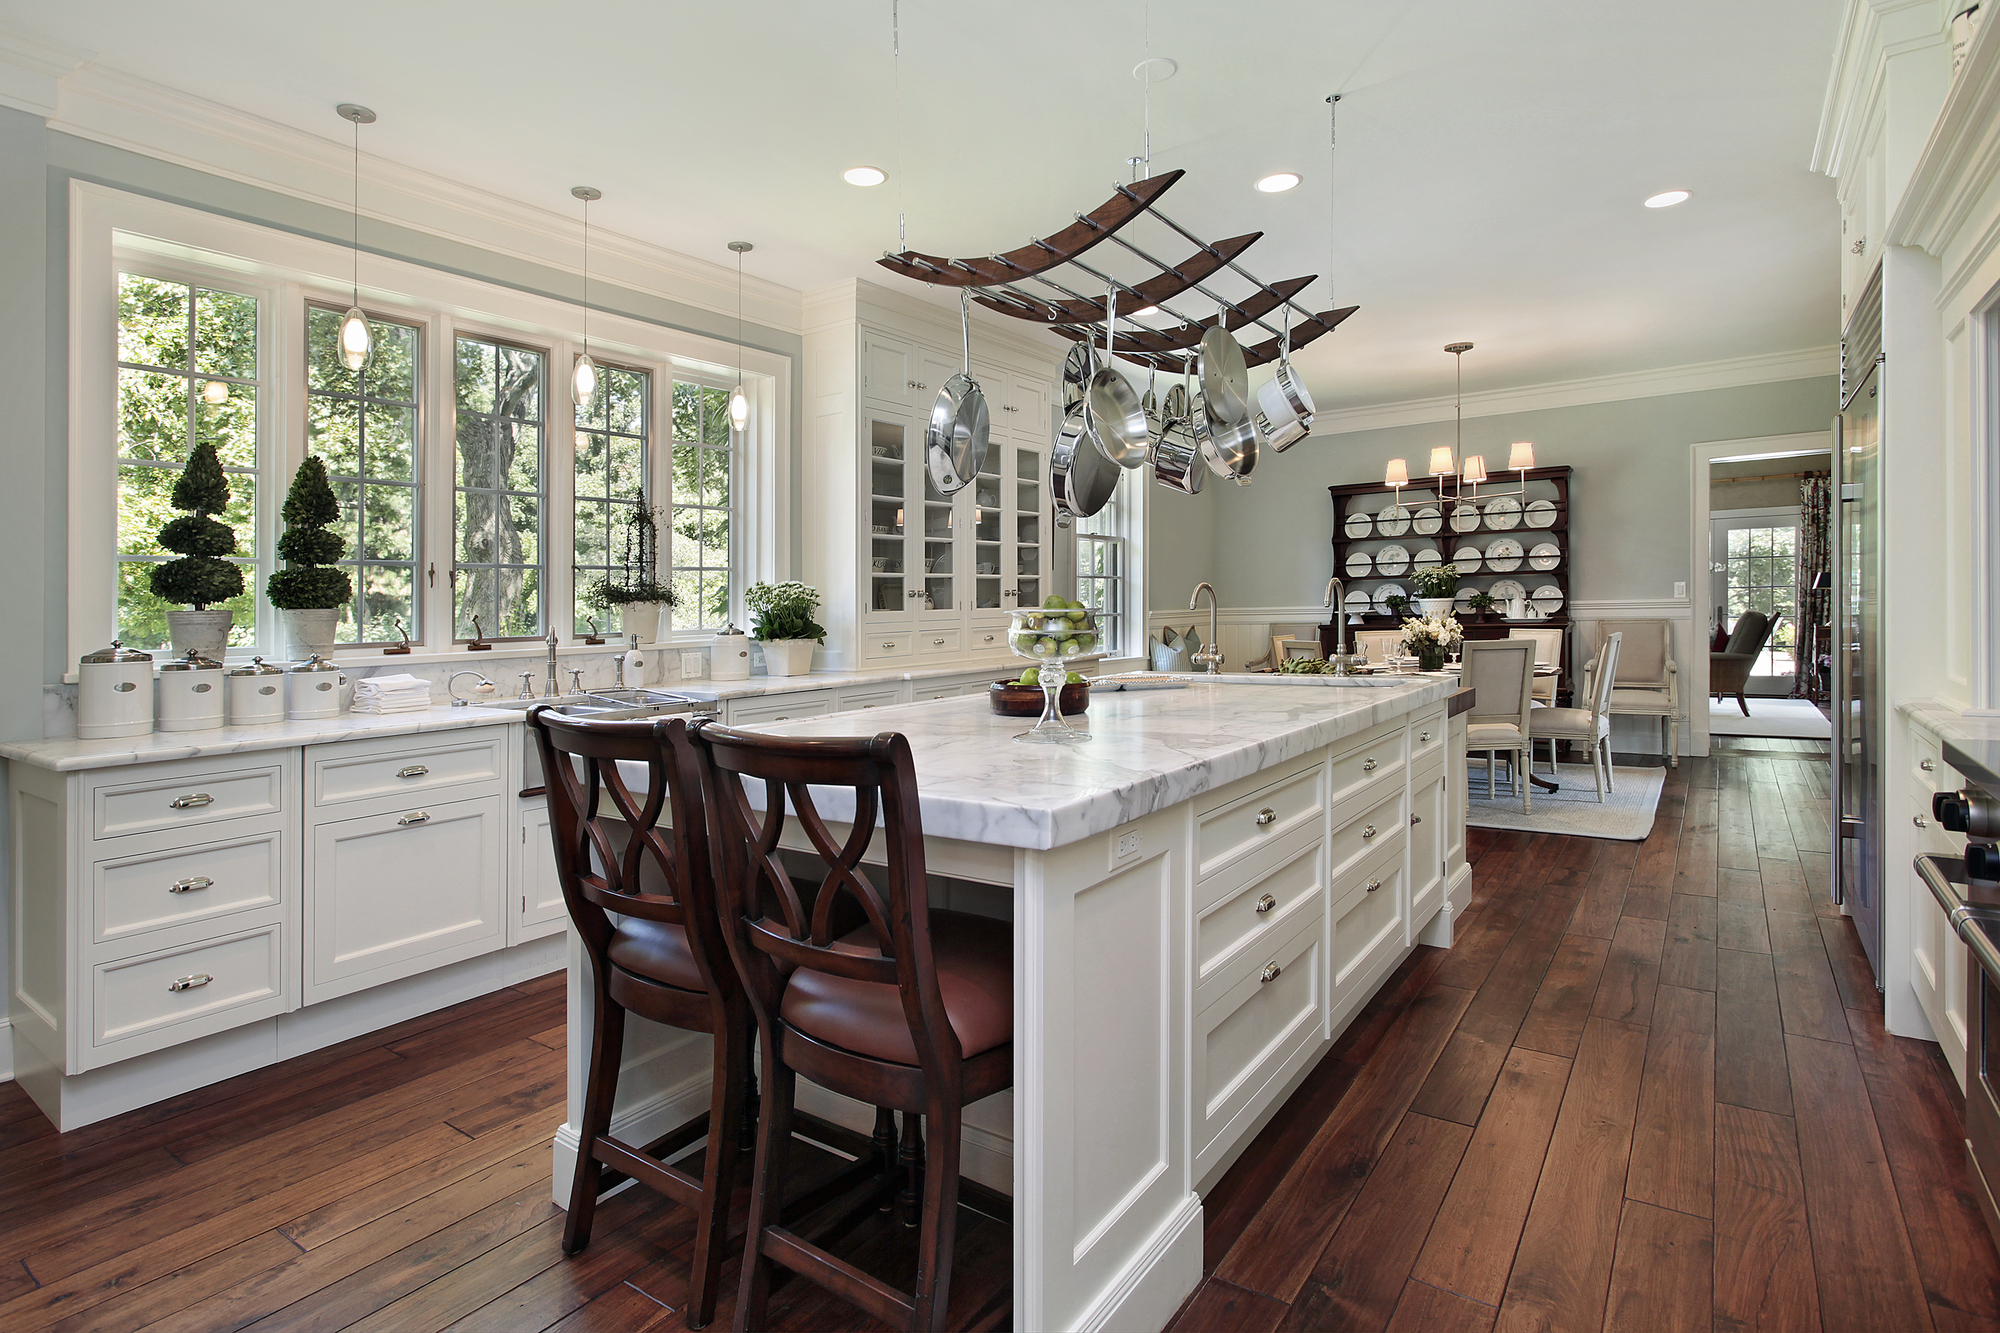 3 kitchen remodeling tasks to create your dream home - phillips